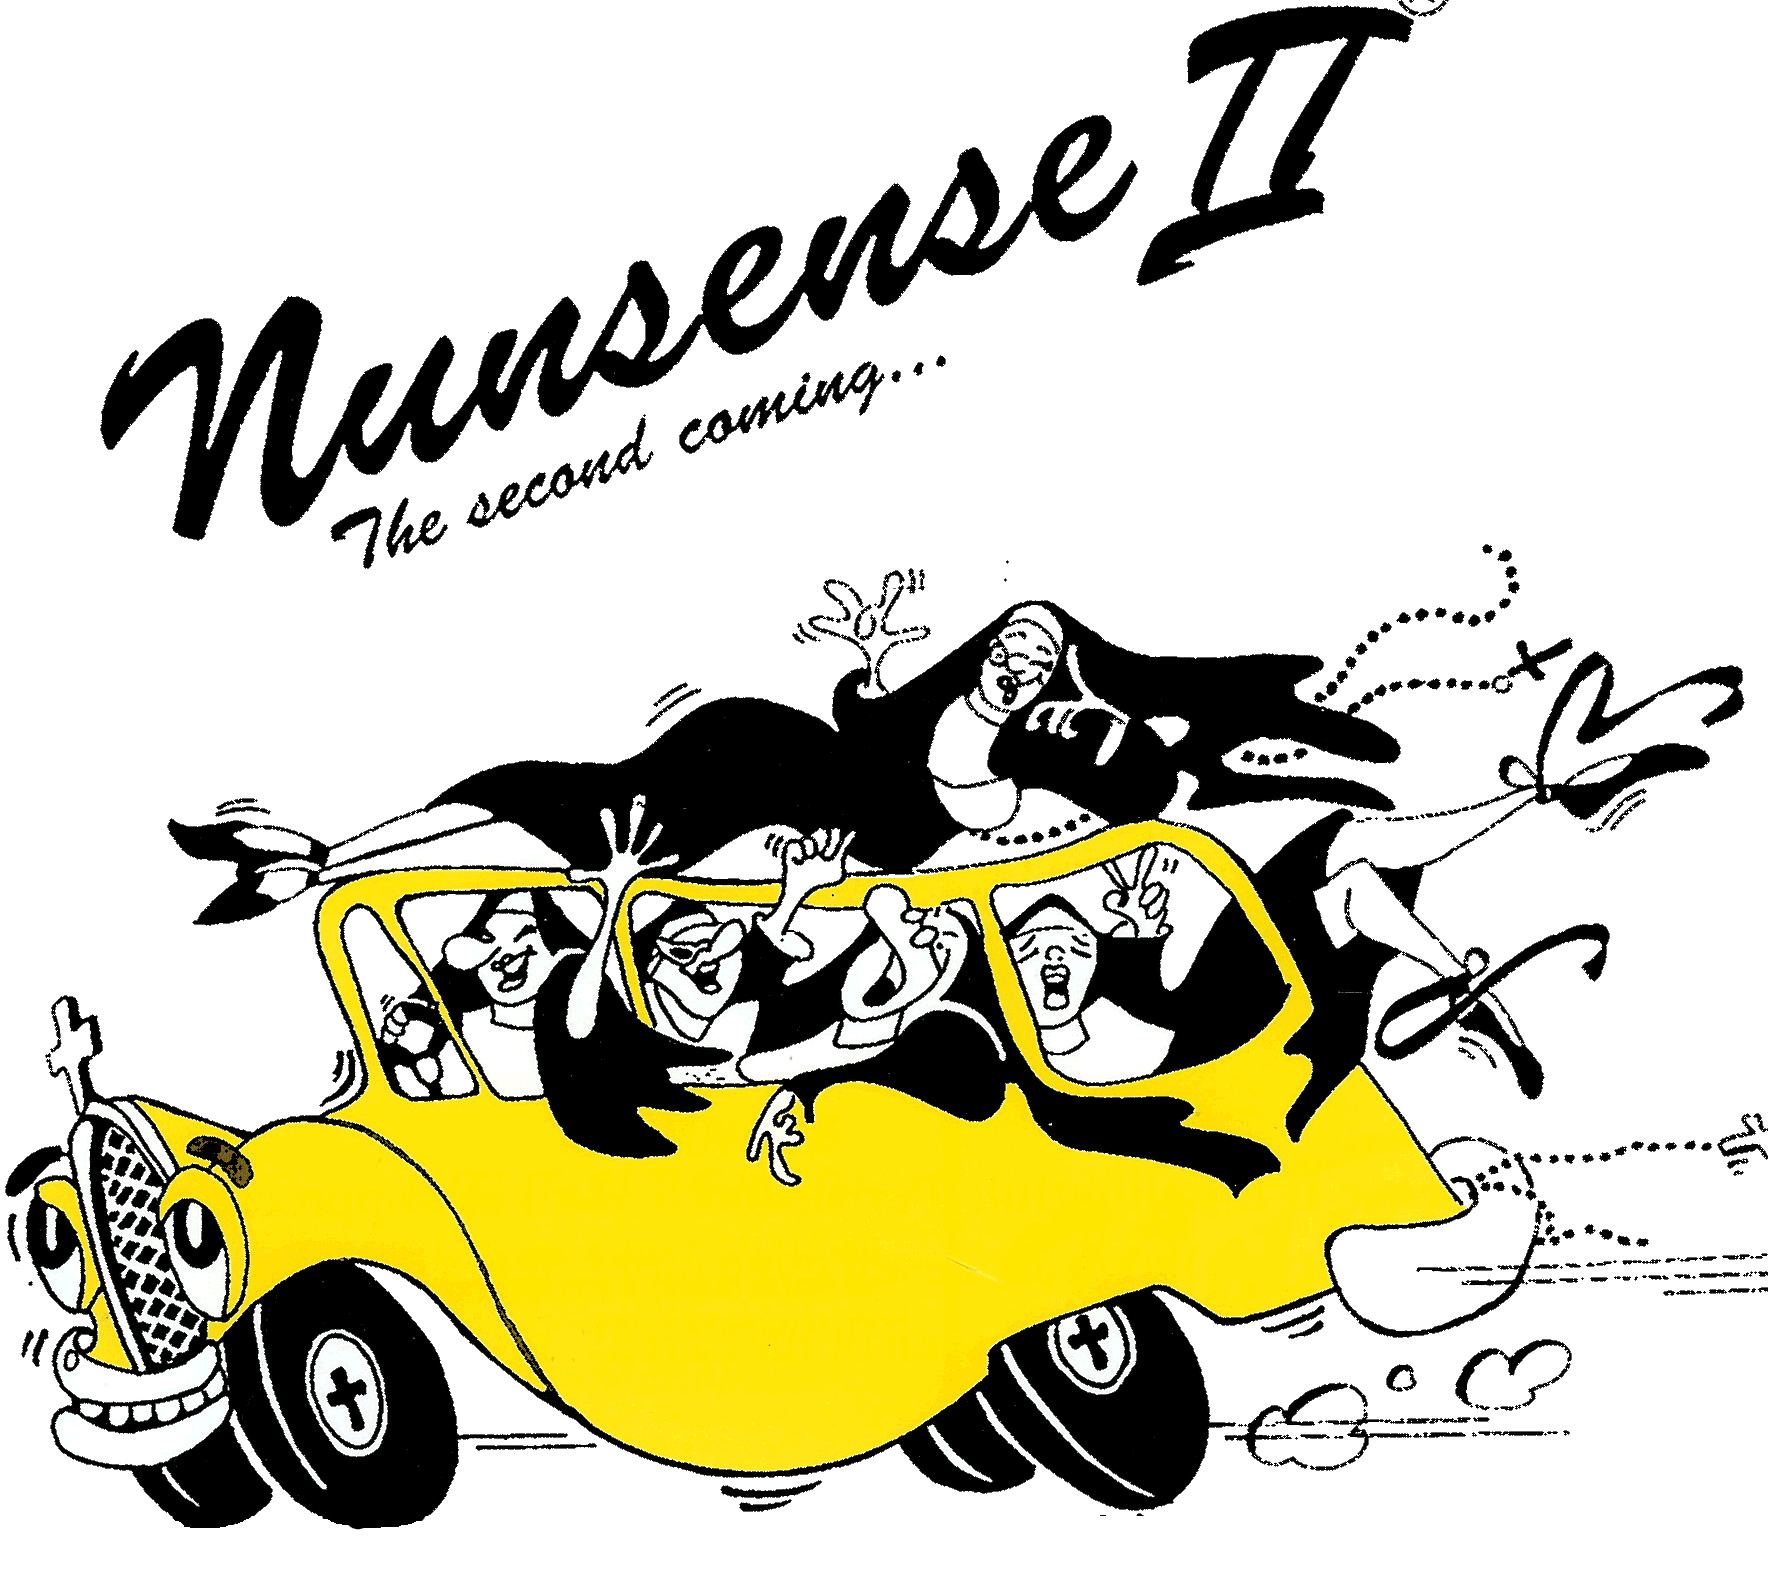 Nunsense 2 : The Second Coming